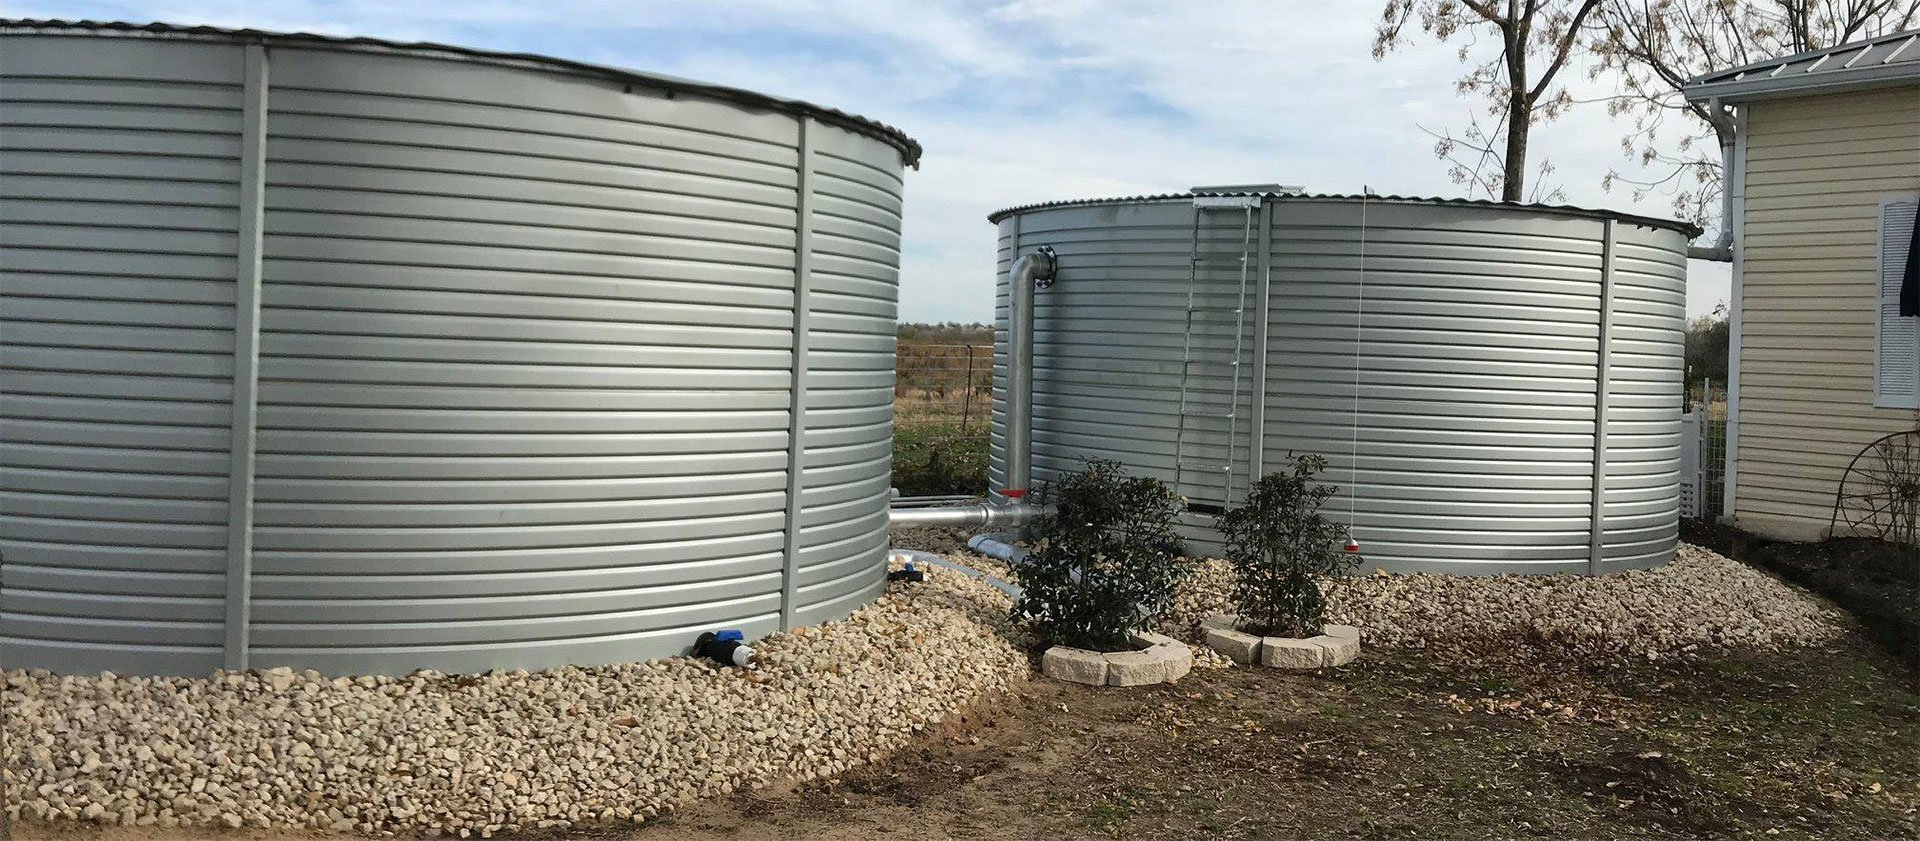 Flow Rainwater Systems home rainwater system